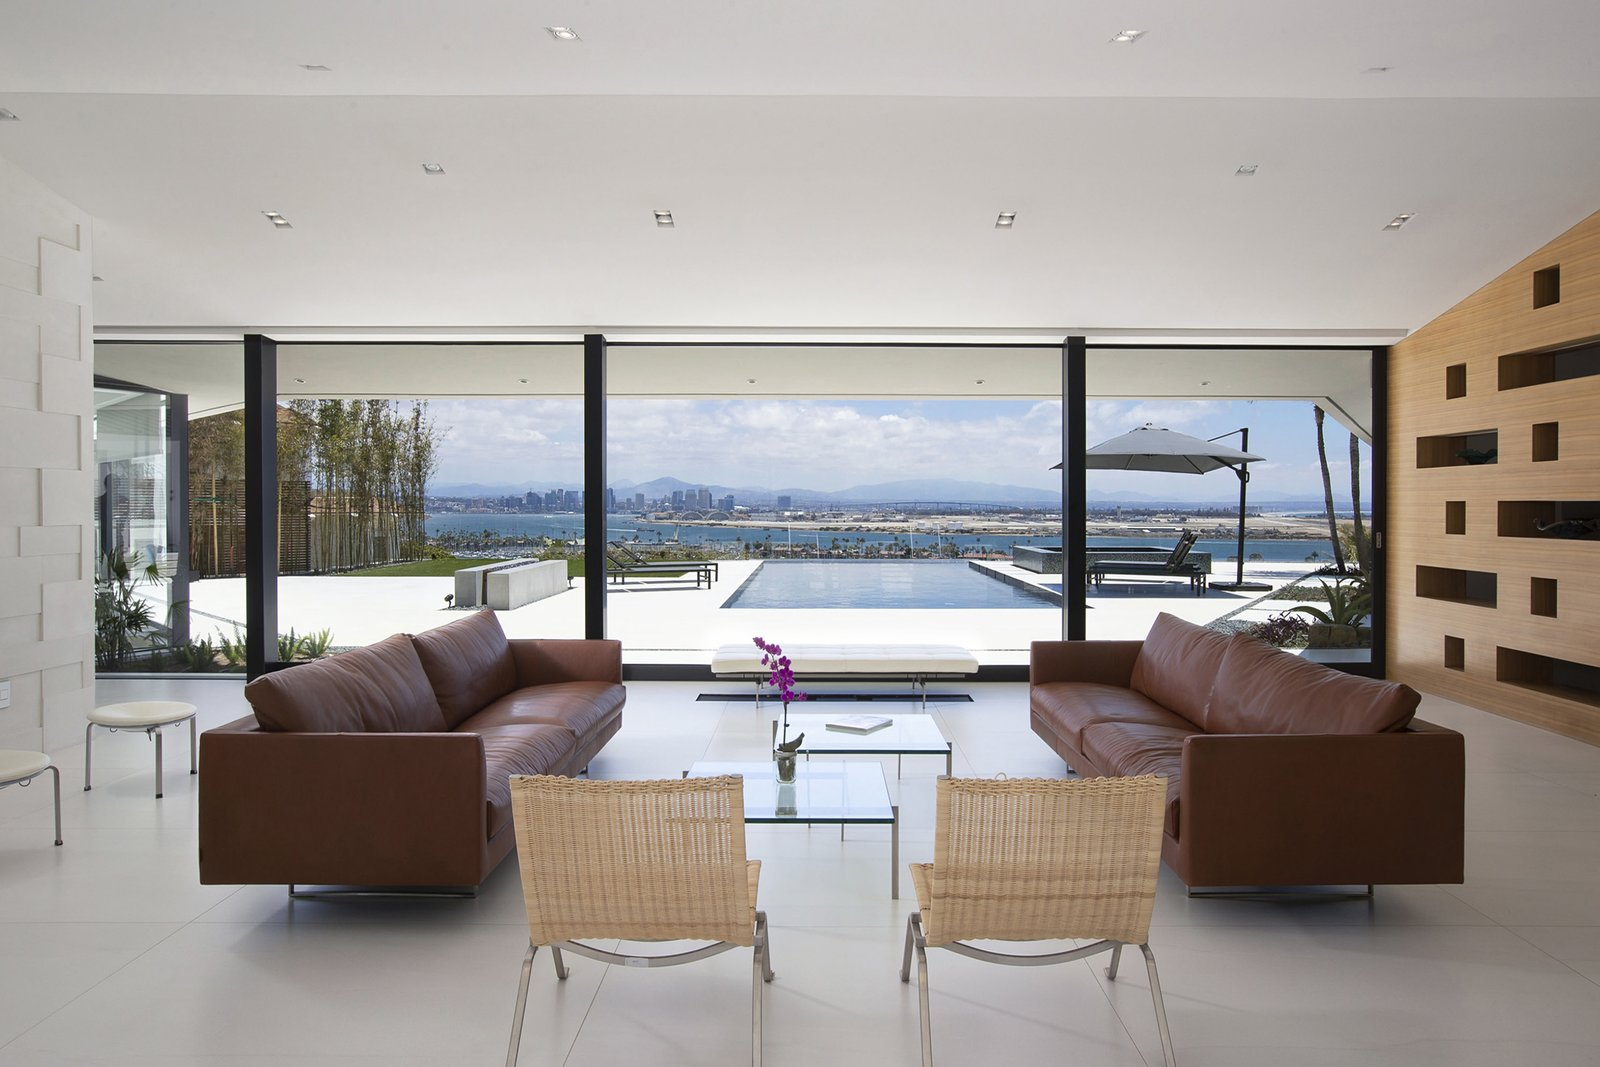 Living Room, Sofa, Stools, Recessed Lighting, Coffee Tables, Ceramic Tile Floor, Chair, and Bench The living room features stunning views of the infinity pool and beyond.  Best Photos from A Renovated Midcentury in San Diego Is Sharp and Sustainable